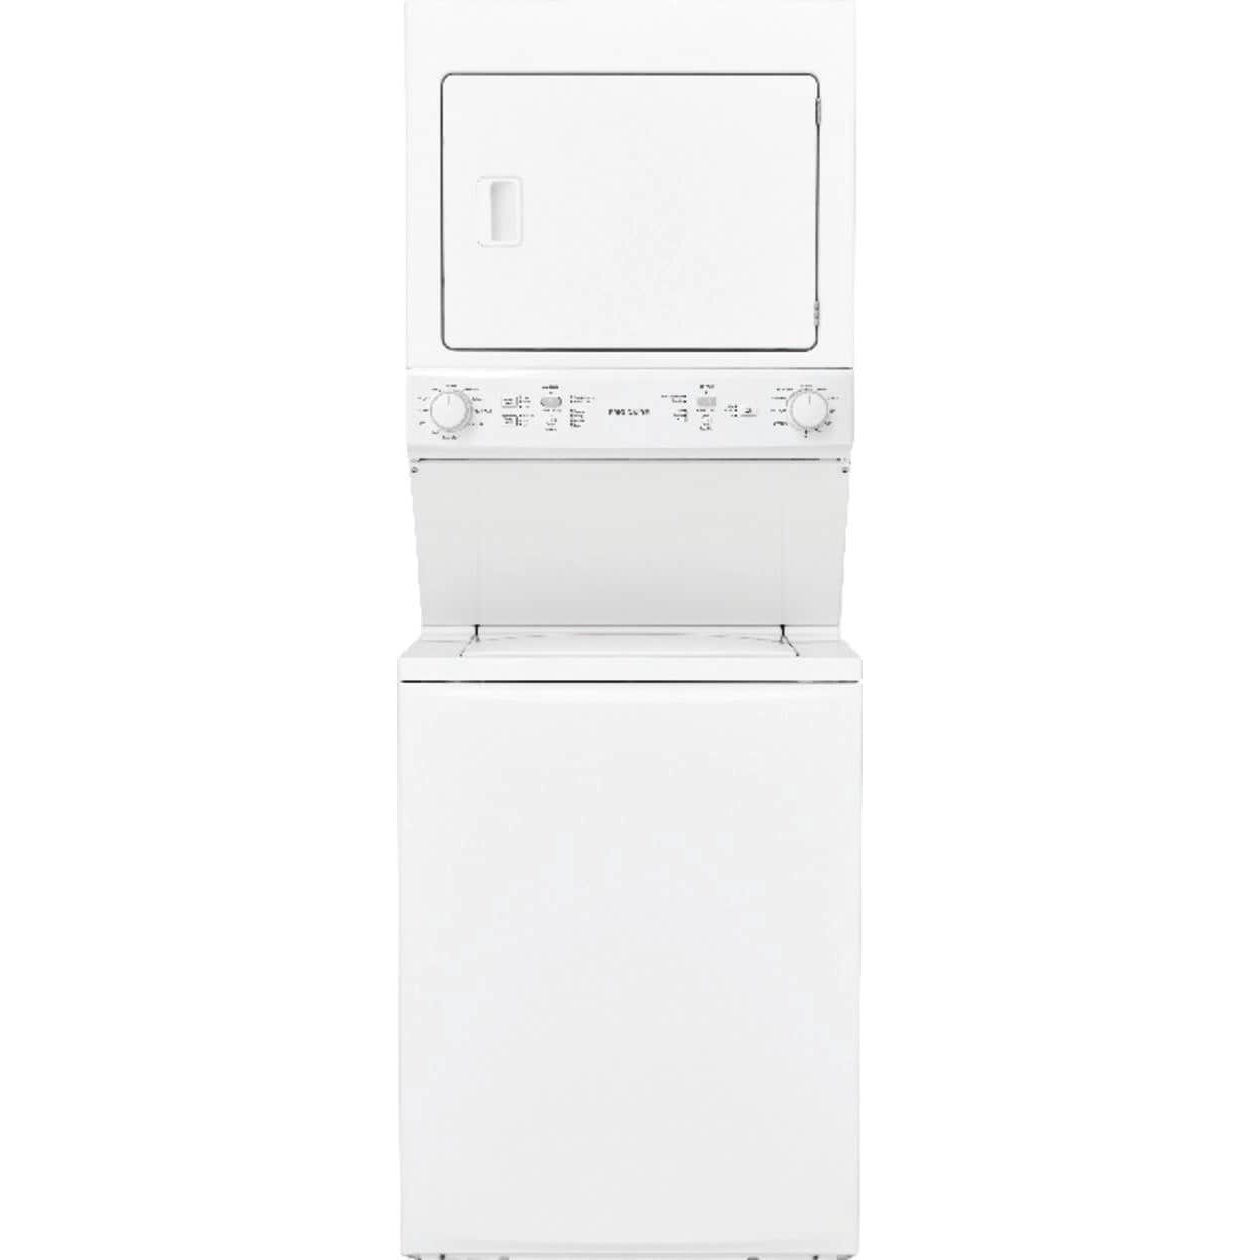 Frigidaire Gas Washer/Dryer Laundry Center - 3.9 Cu. Ft Washer and.